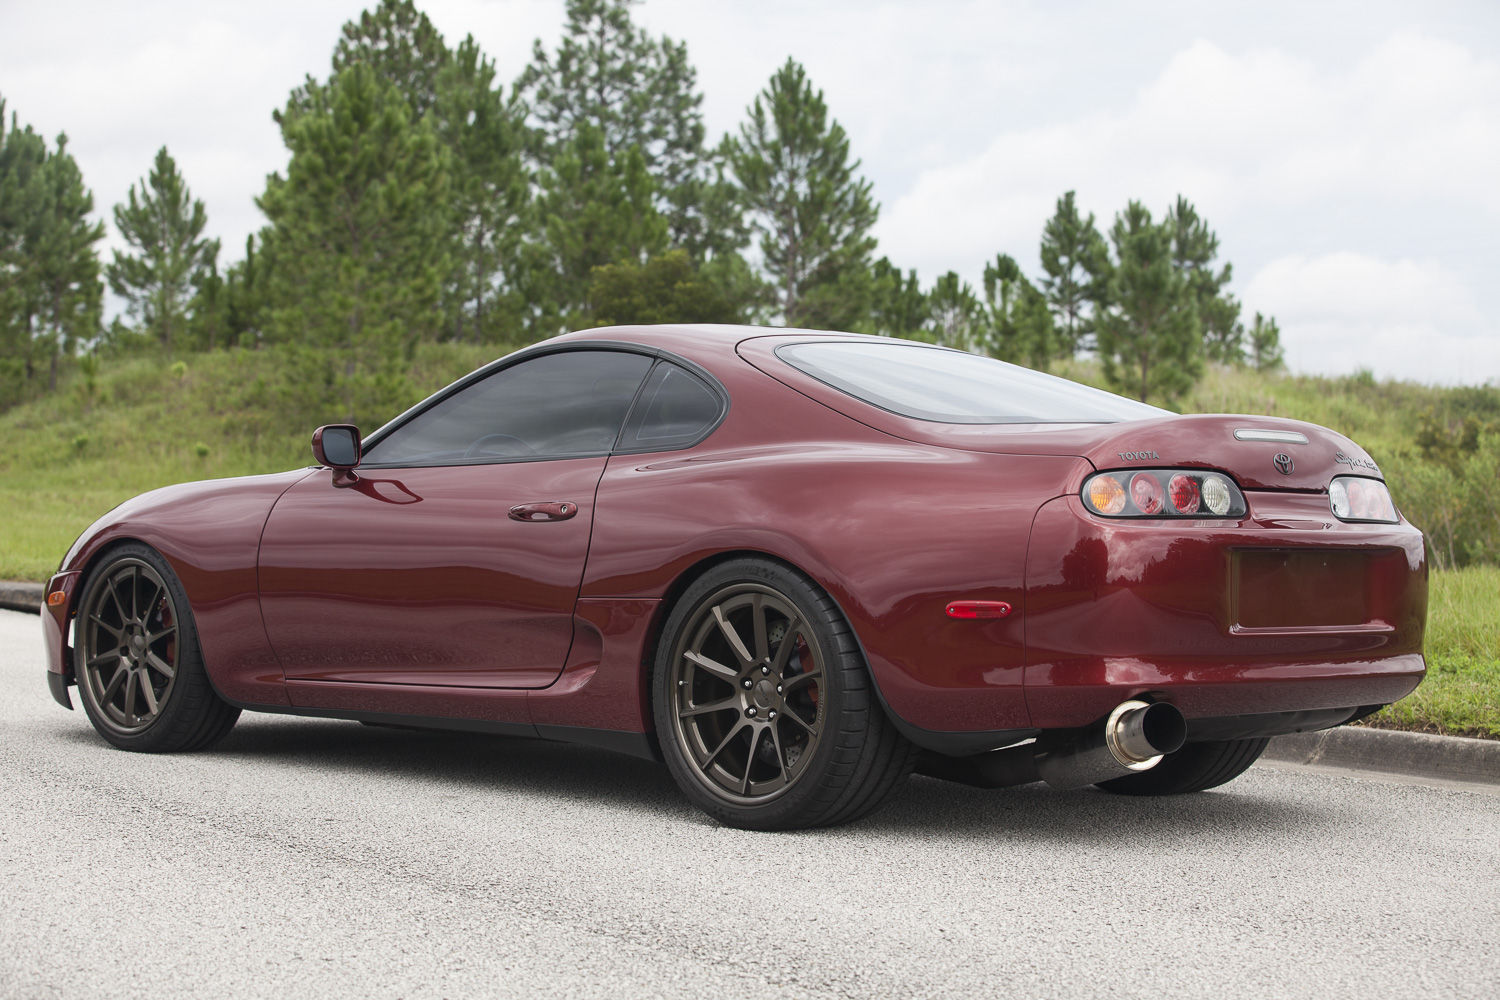 1997 Toyota Supra | Titan Motorsports Ruby Red MKIV Toyota Supra on Forgeline RB3C Concave Wheels